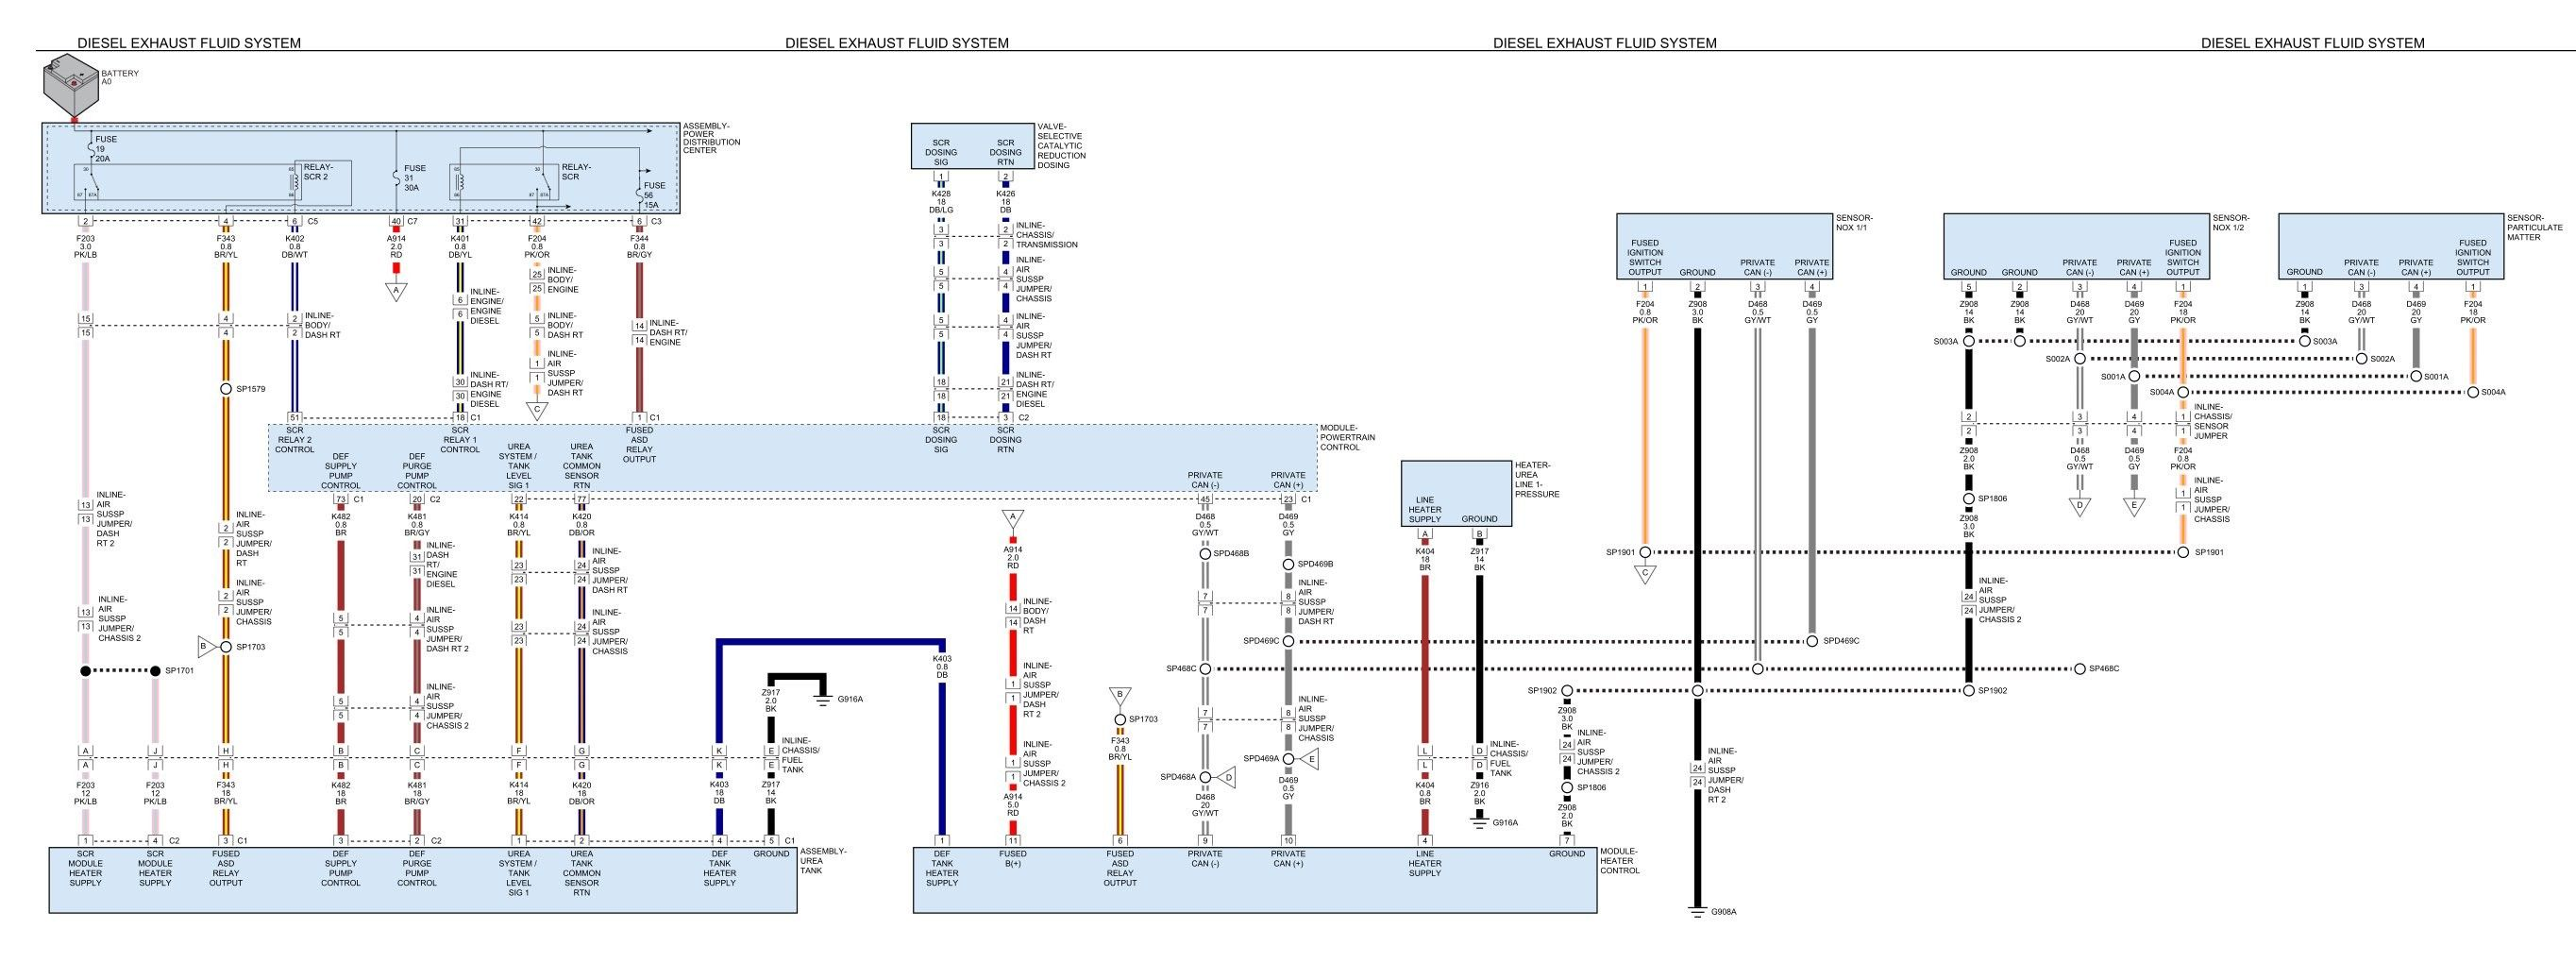 Unique Stereo Wiring Diagram For 2002 Dodge Ram 1500 Diagram Diagramsample Diagramtemplate Wiringdiagram Diagramchart Work Dodge Ram 1500 Dodge Dodge Ram